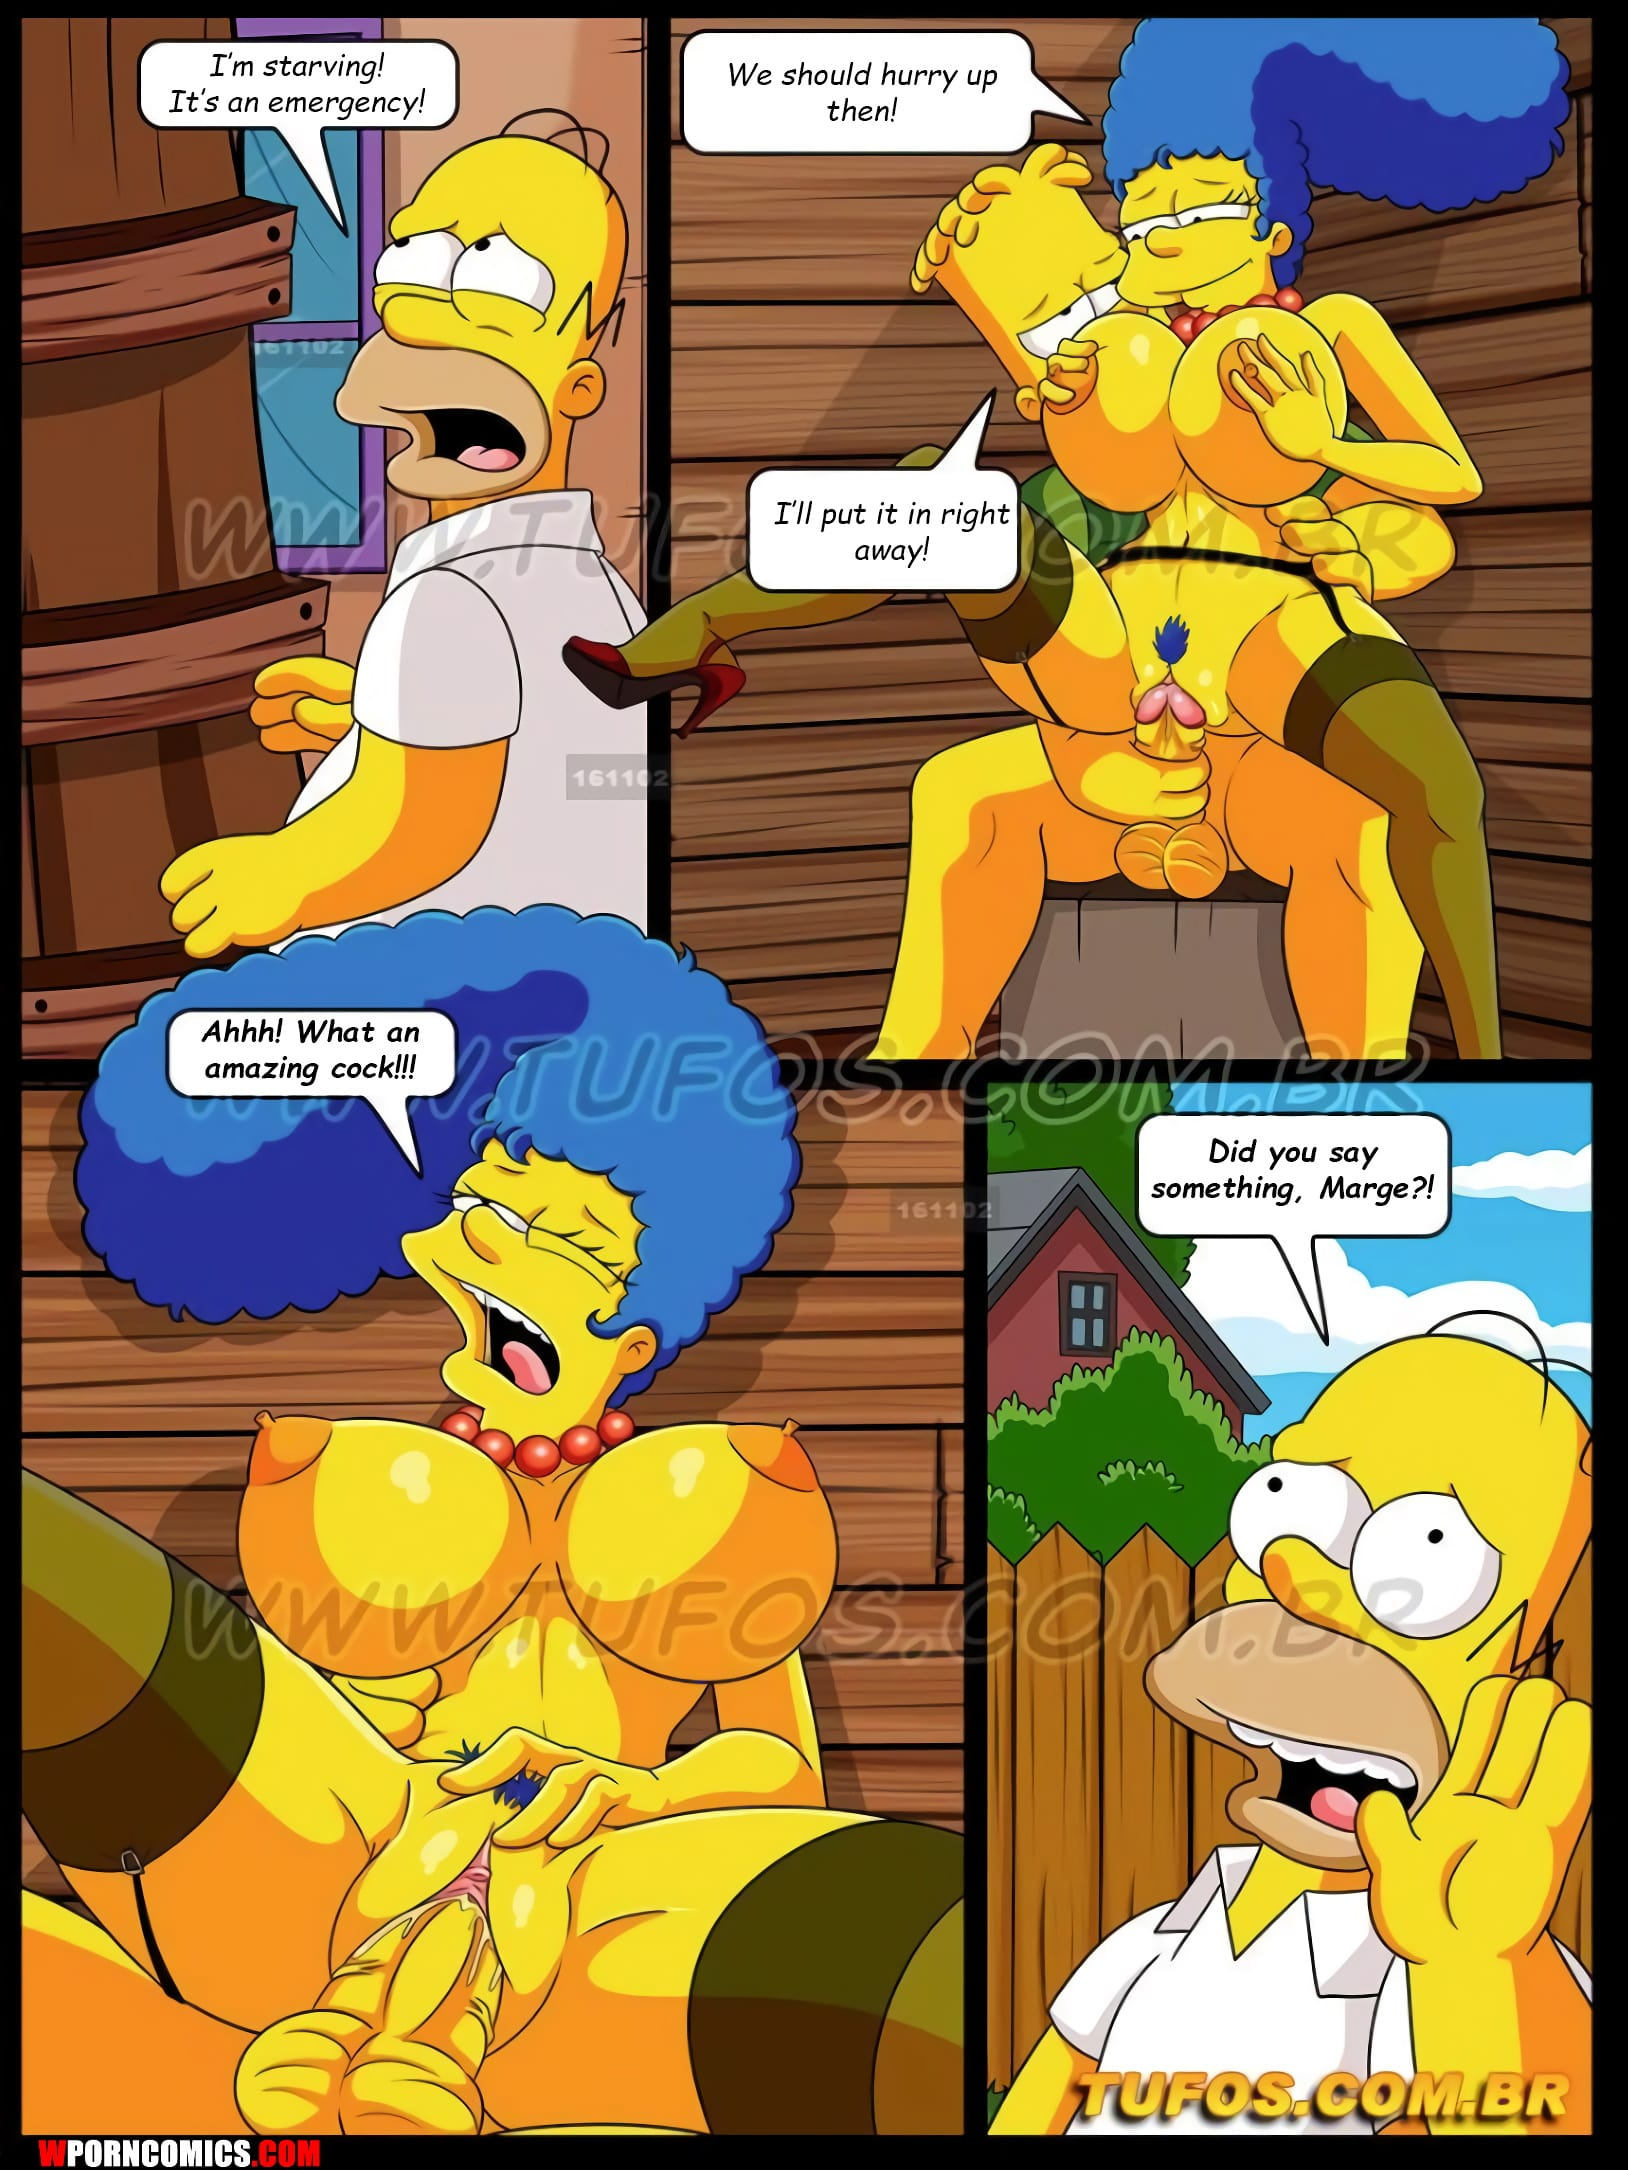 porn-comic-simpsons-part-12-fucking-in-the-treehouse-2020-03-19/porn-comic-simpsons-part-12-fucking-in-the-treehouse-2020-03-19-27351.jpg